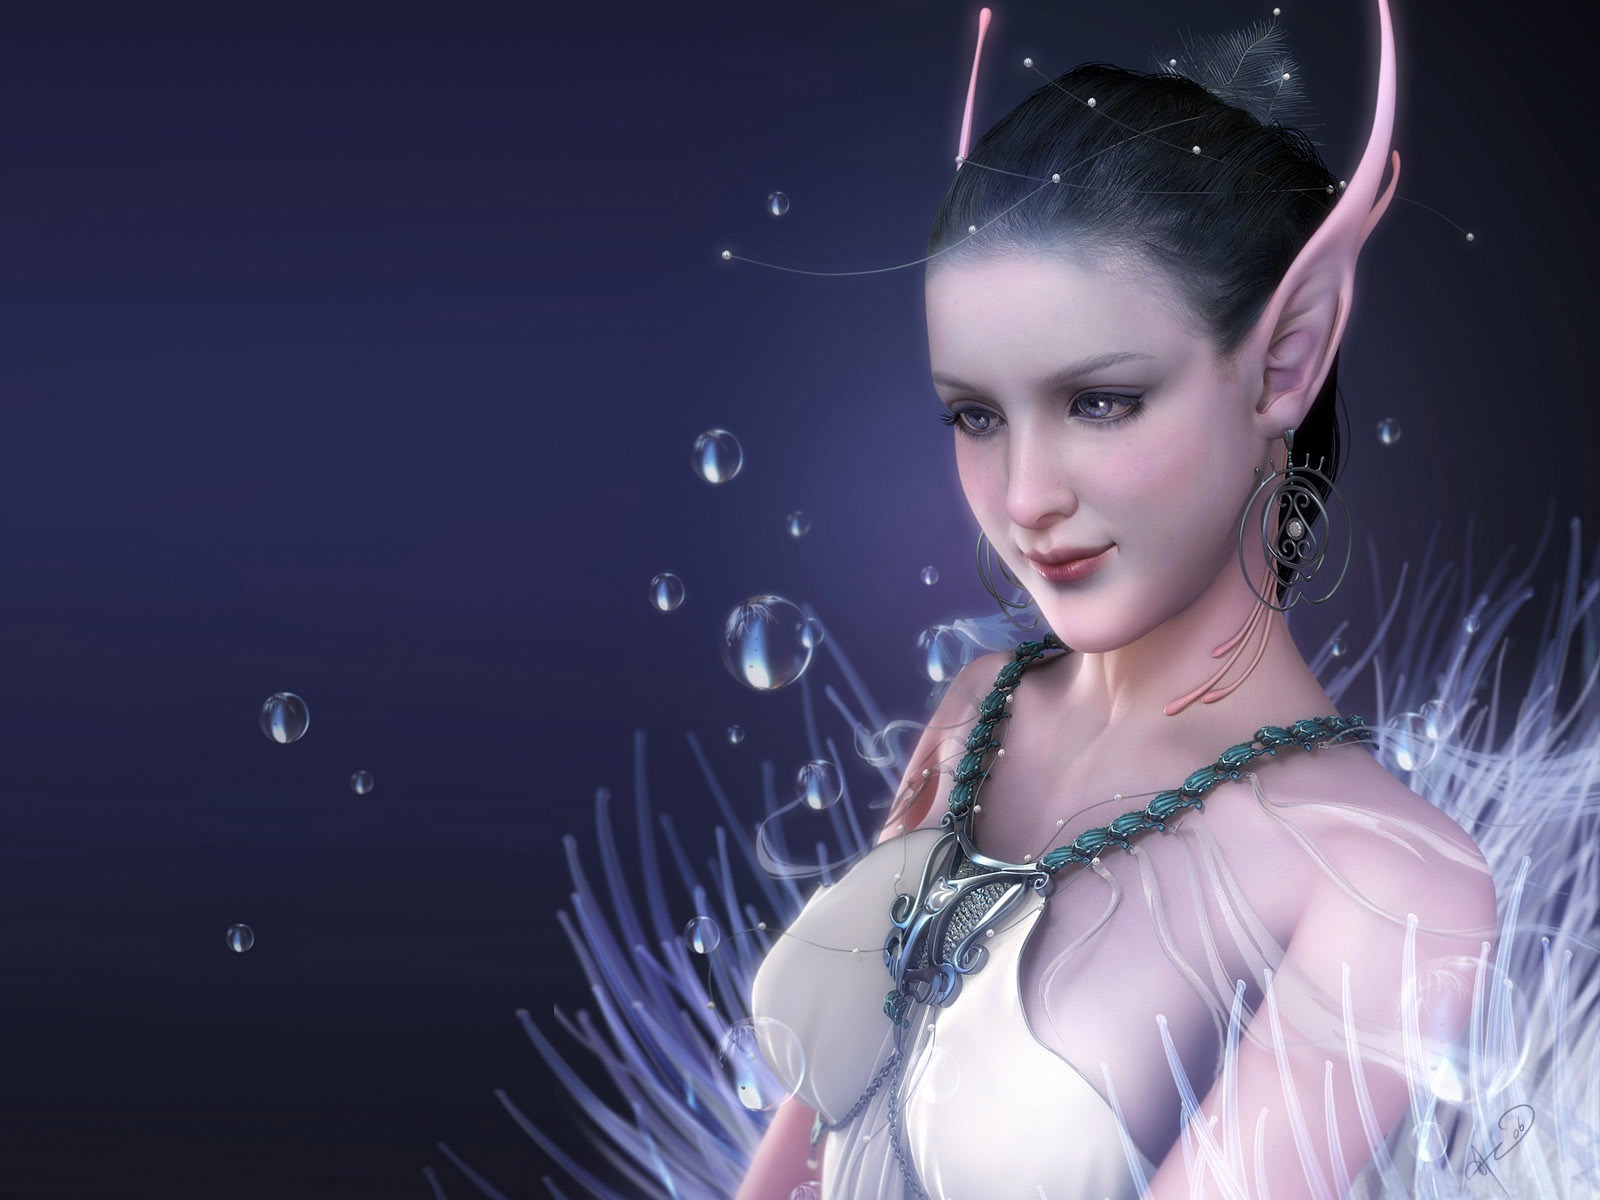 Background Wallpapers on this Fairy Background Wallpapers website 1600x1200